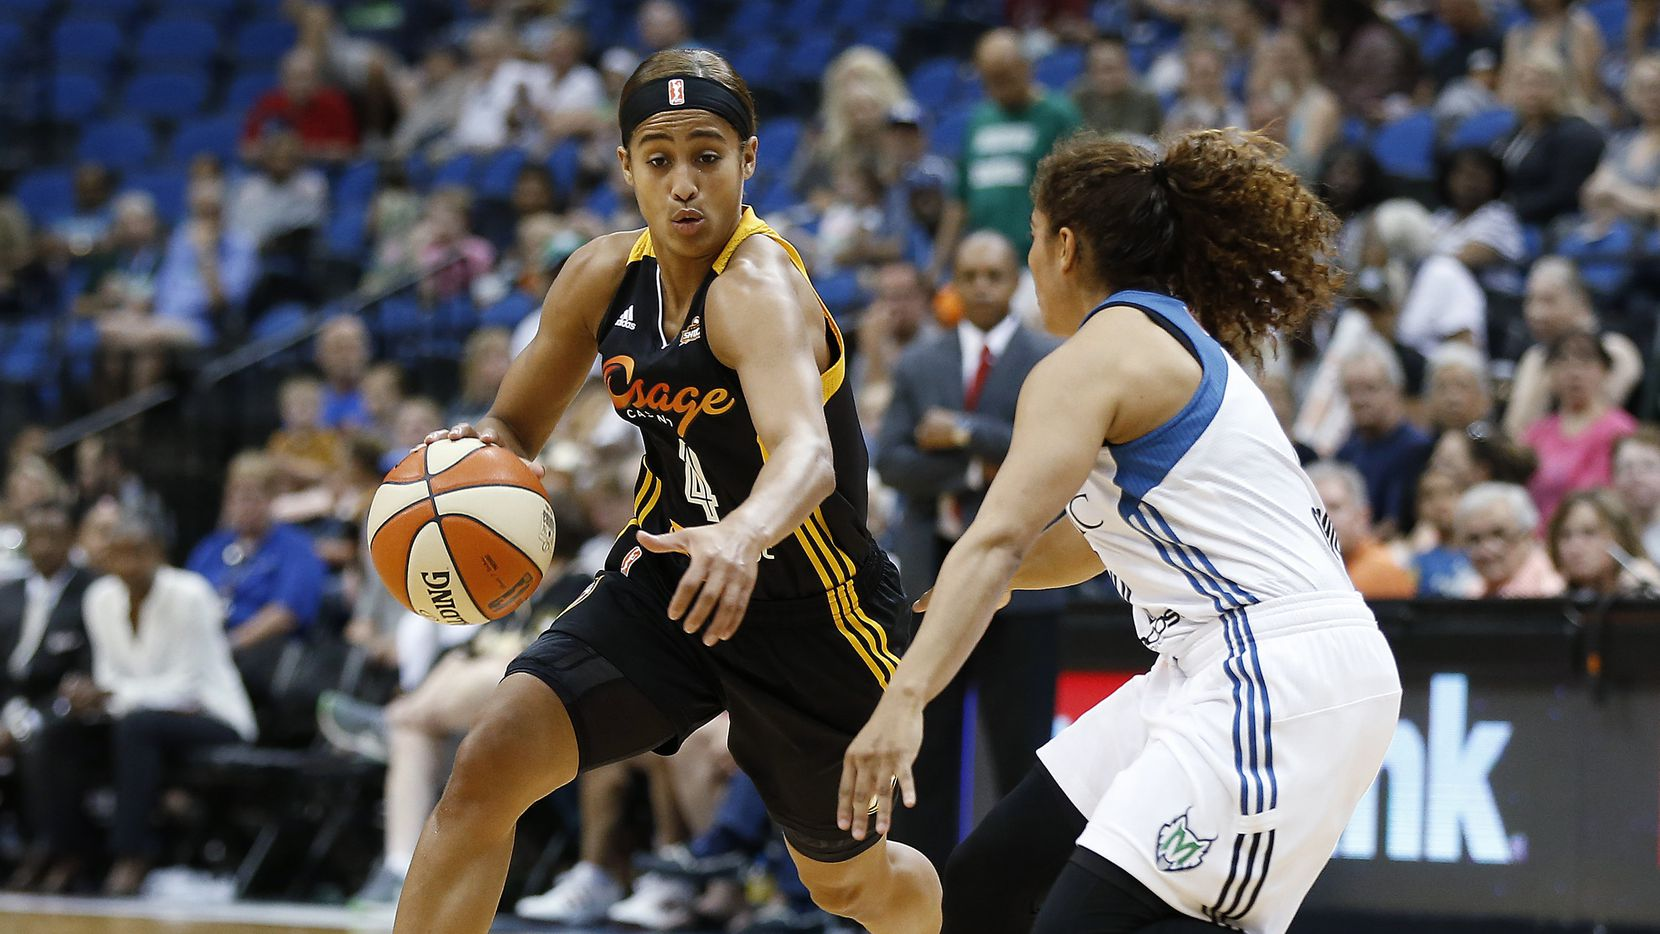 In this June 21, 2015, file photo, Tulsa Shock guard Skylar Diggins (4) drives the ball around Minnesota Lynx guard Jennifer O'Neill during a WNBA basketball game in Minneapolis. (AP Photo/Stacy Bengs, File)